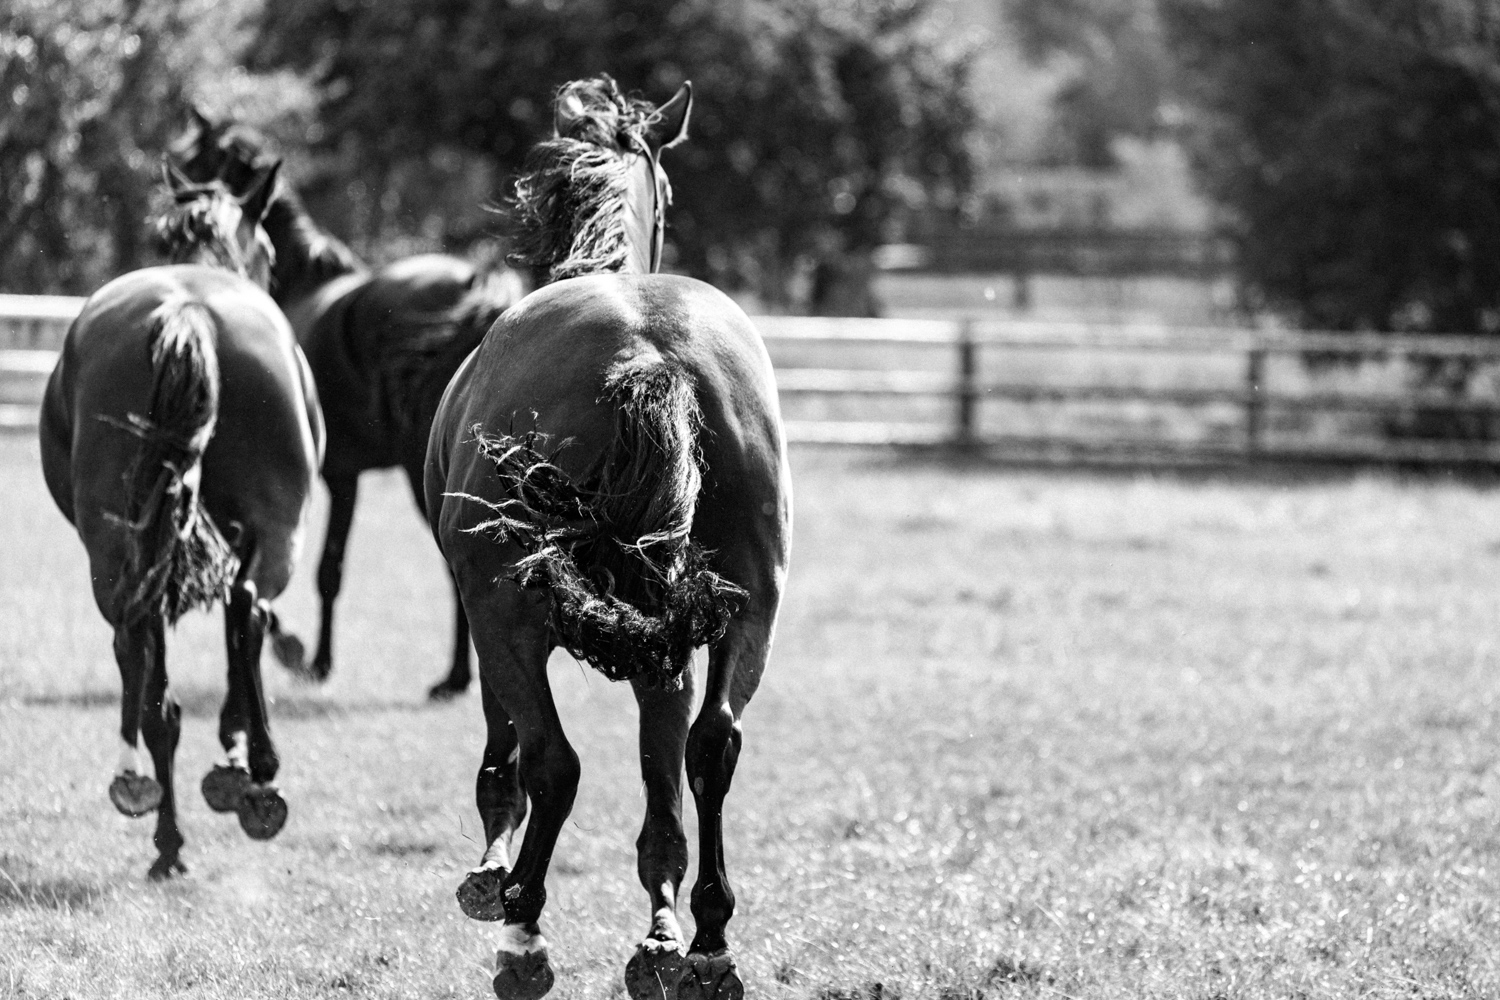 gallop-bw-inaction_SheonaAnnPhotography (1 of 1).jpg